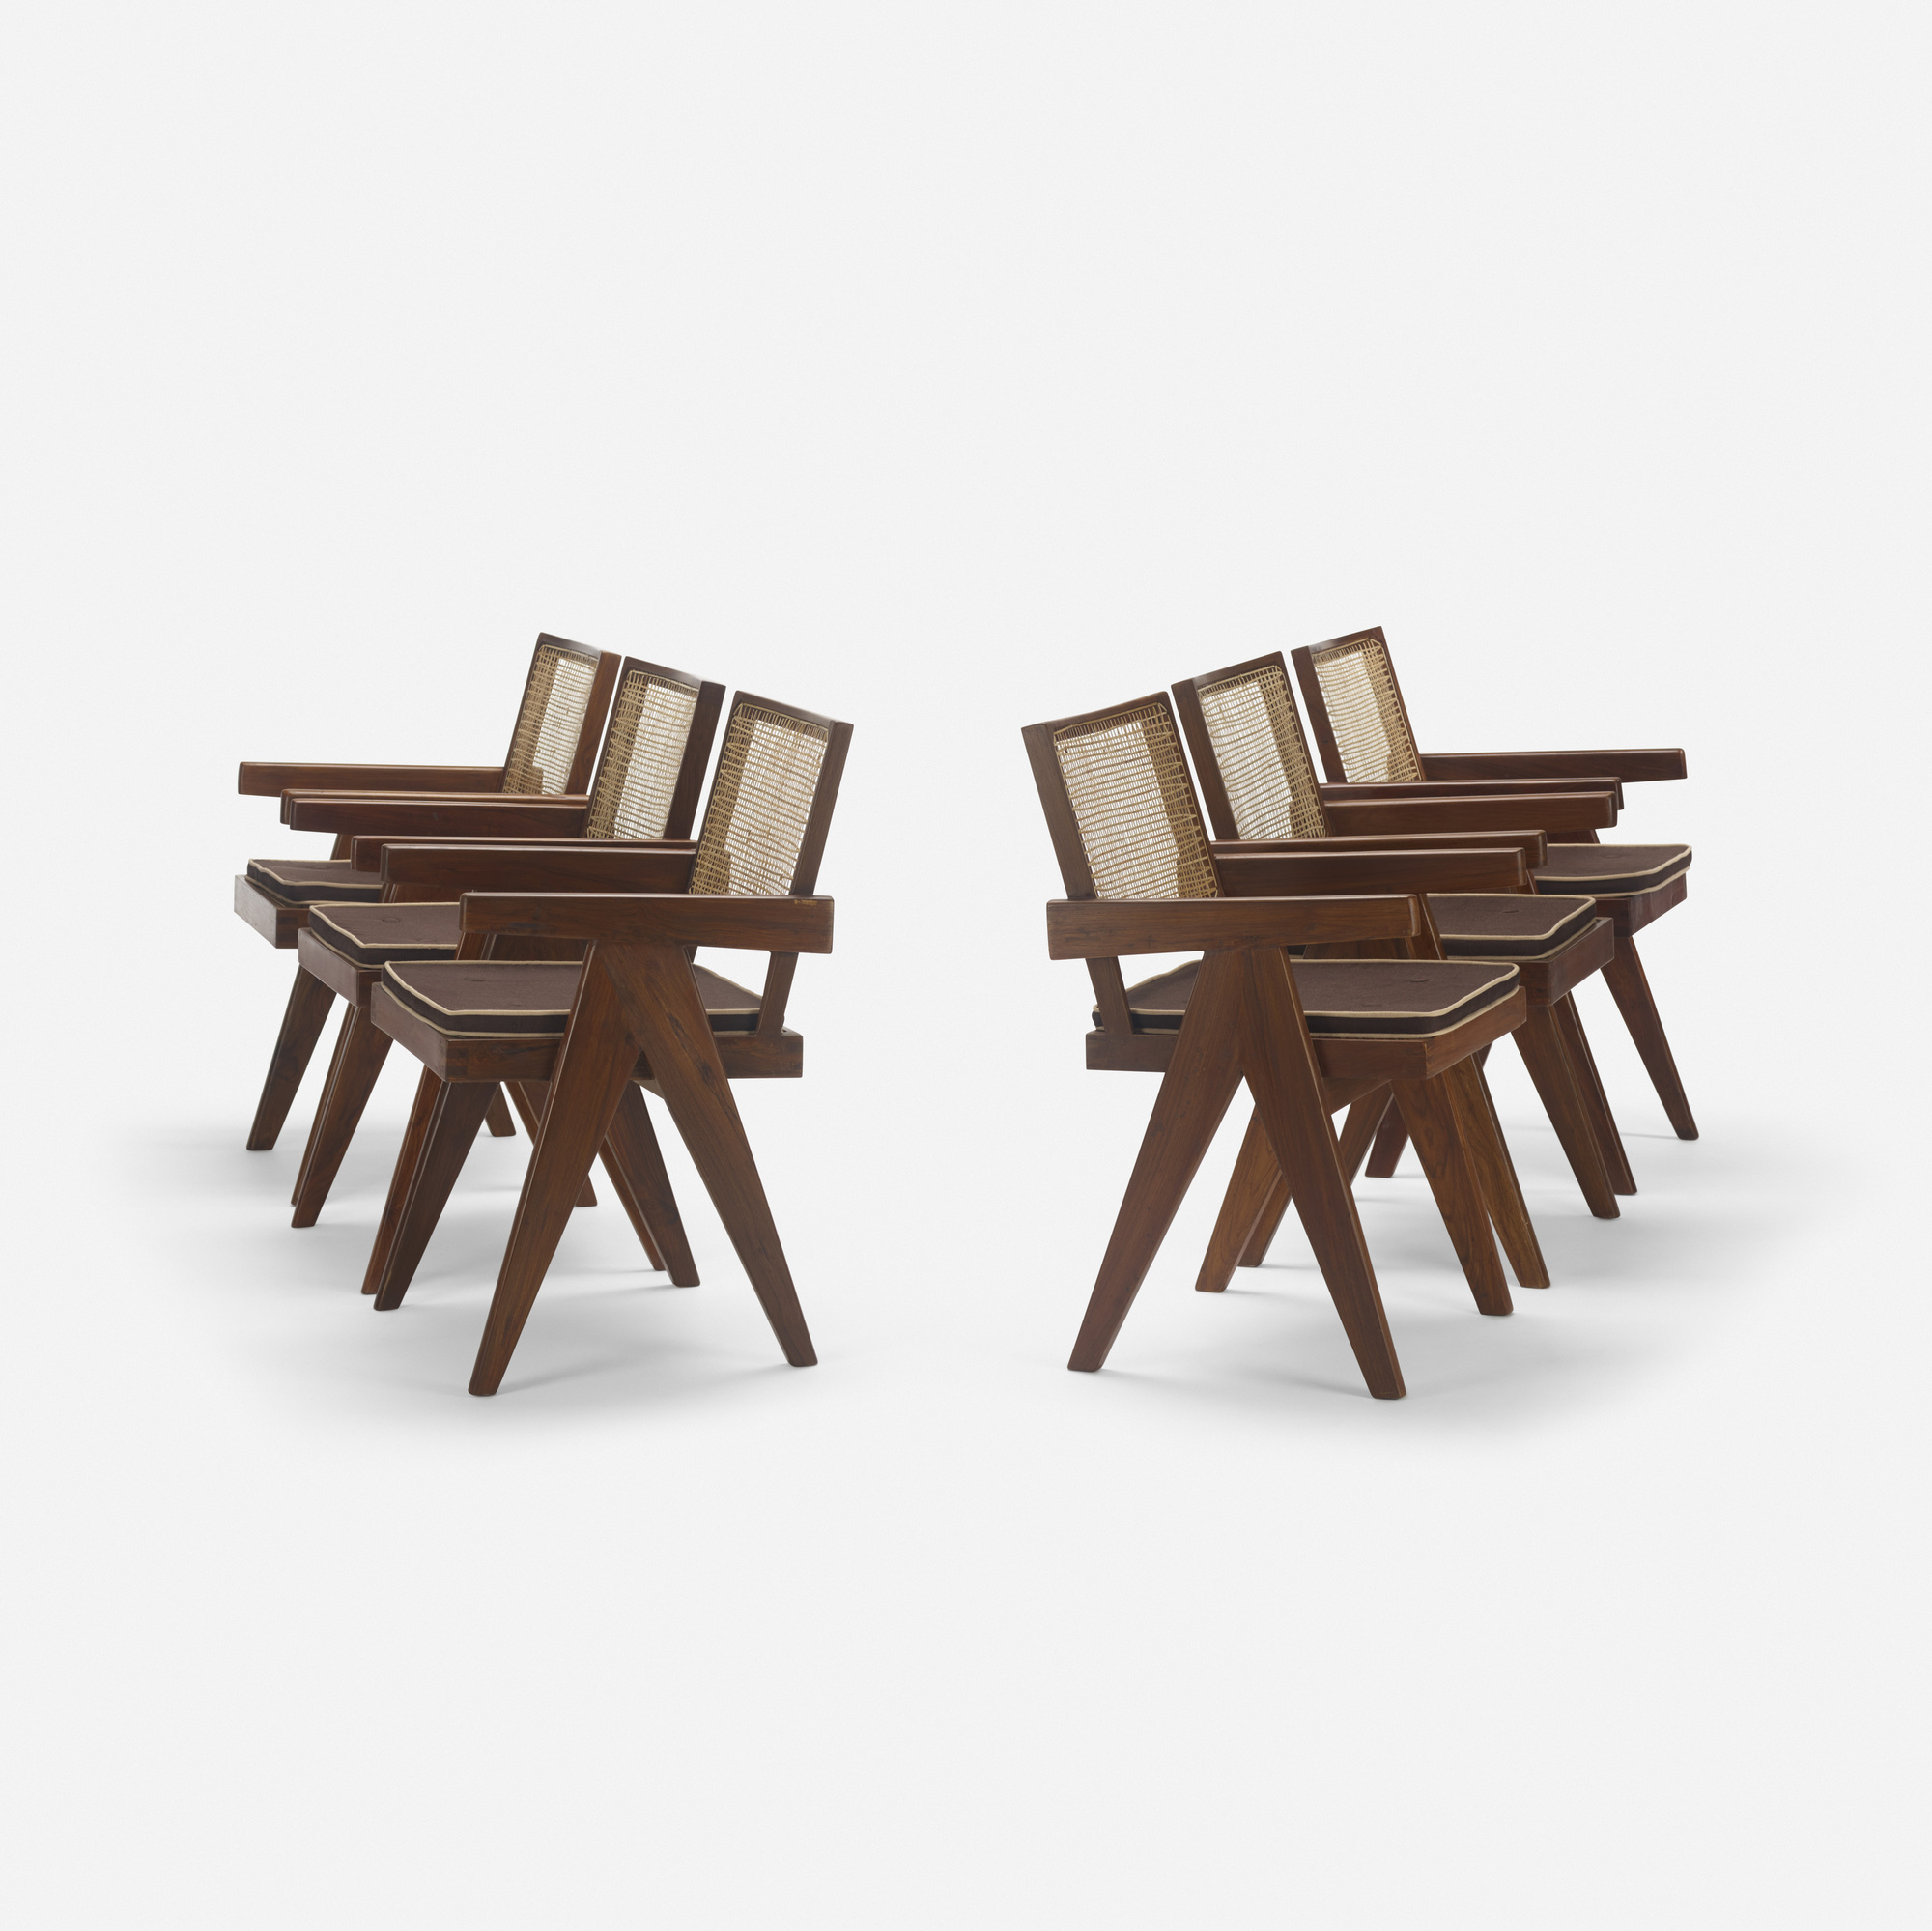 118: Pierre Jeanneret / set of six armchairs from Chandigarh (1 of 3)